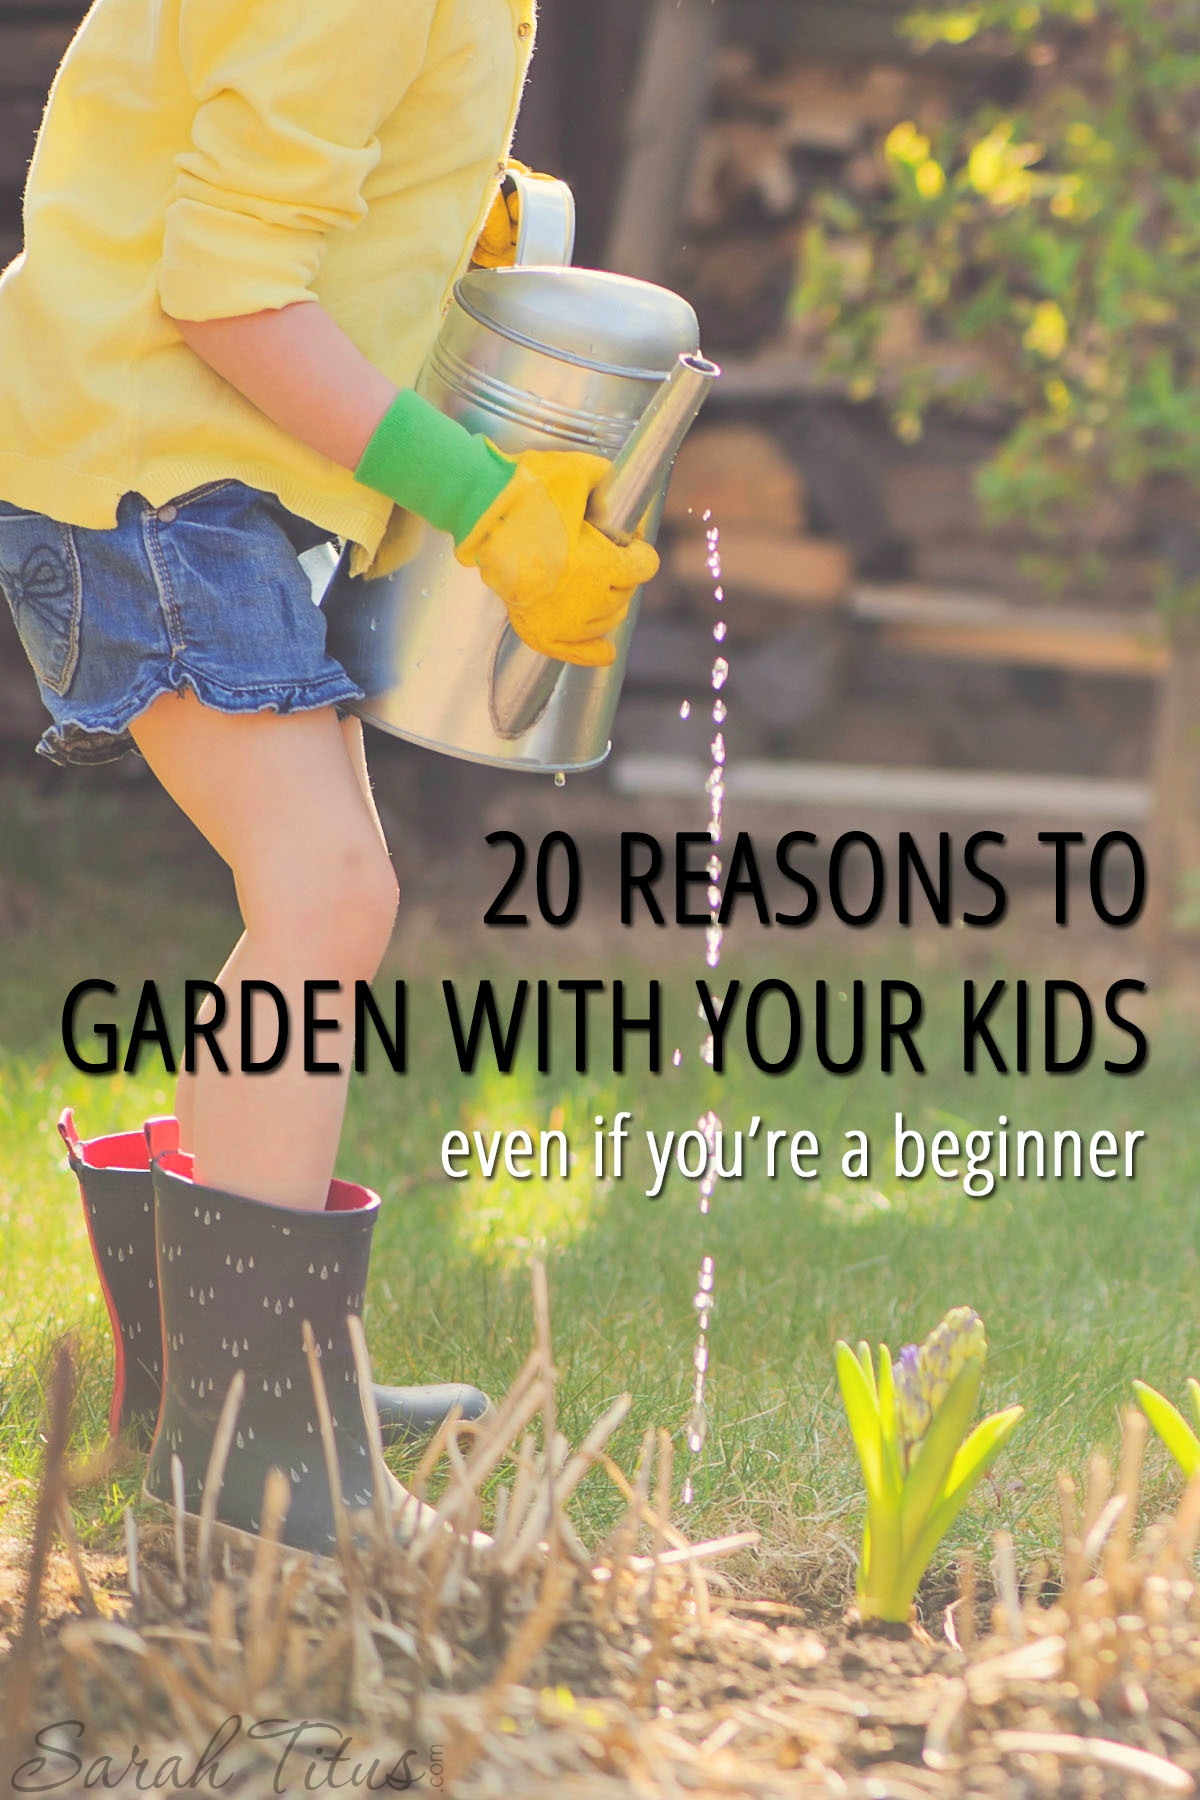 Gardening with your kids can be such a great learning activity and something they really enjoy. See all 20 reasons to garden with your kids even if you're a beginner!